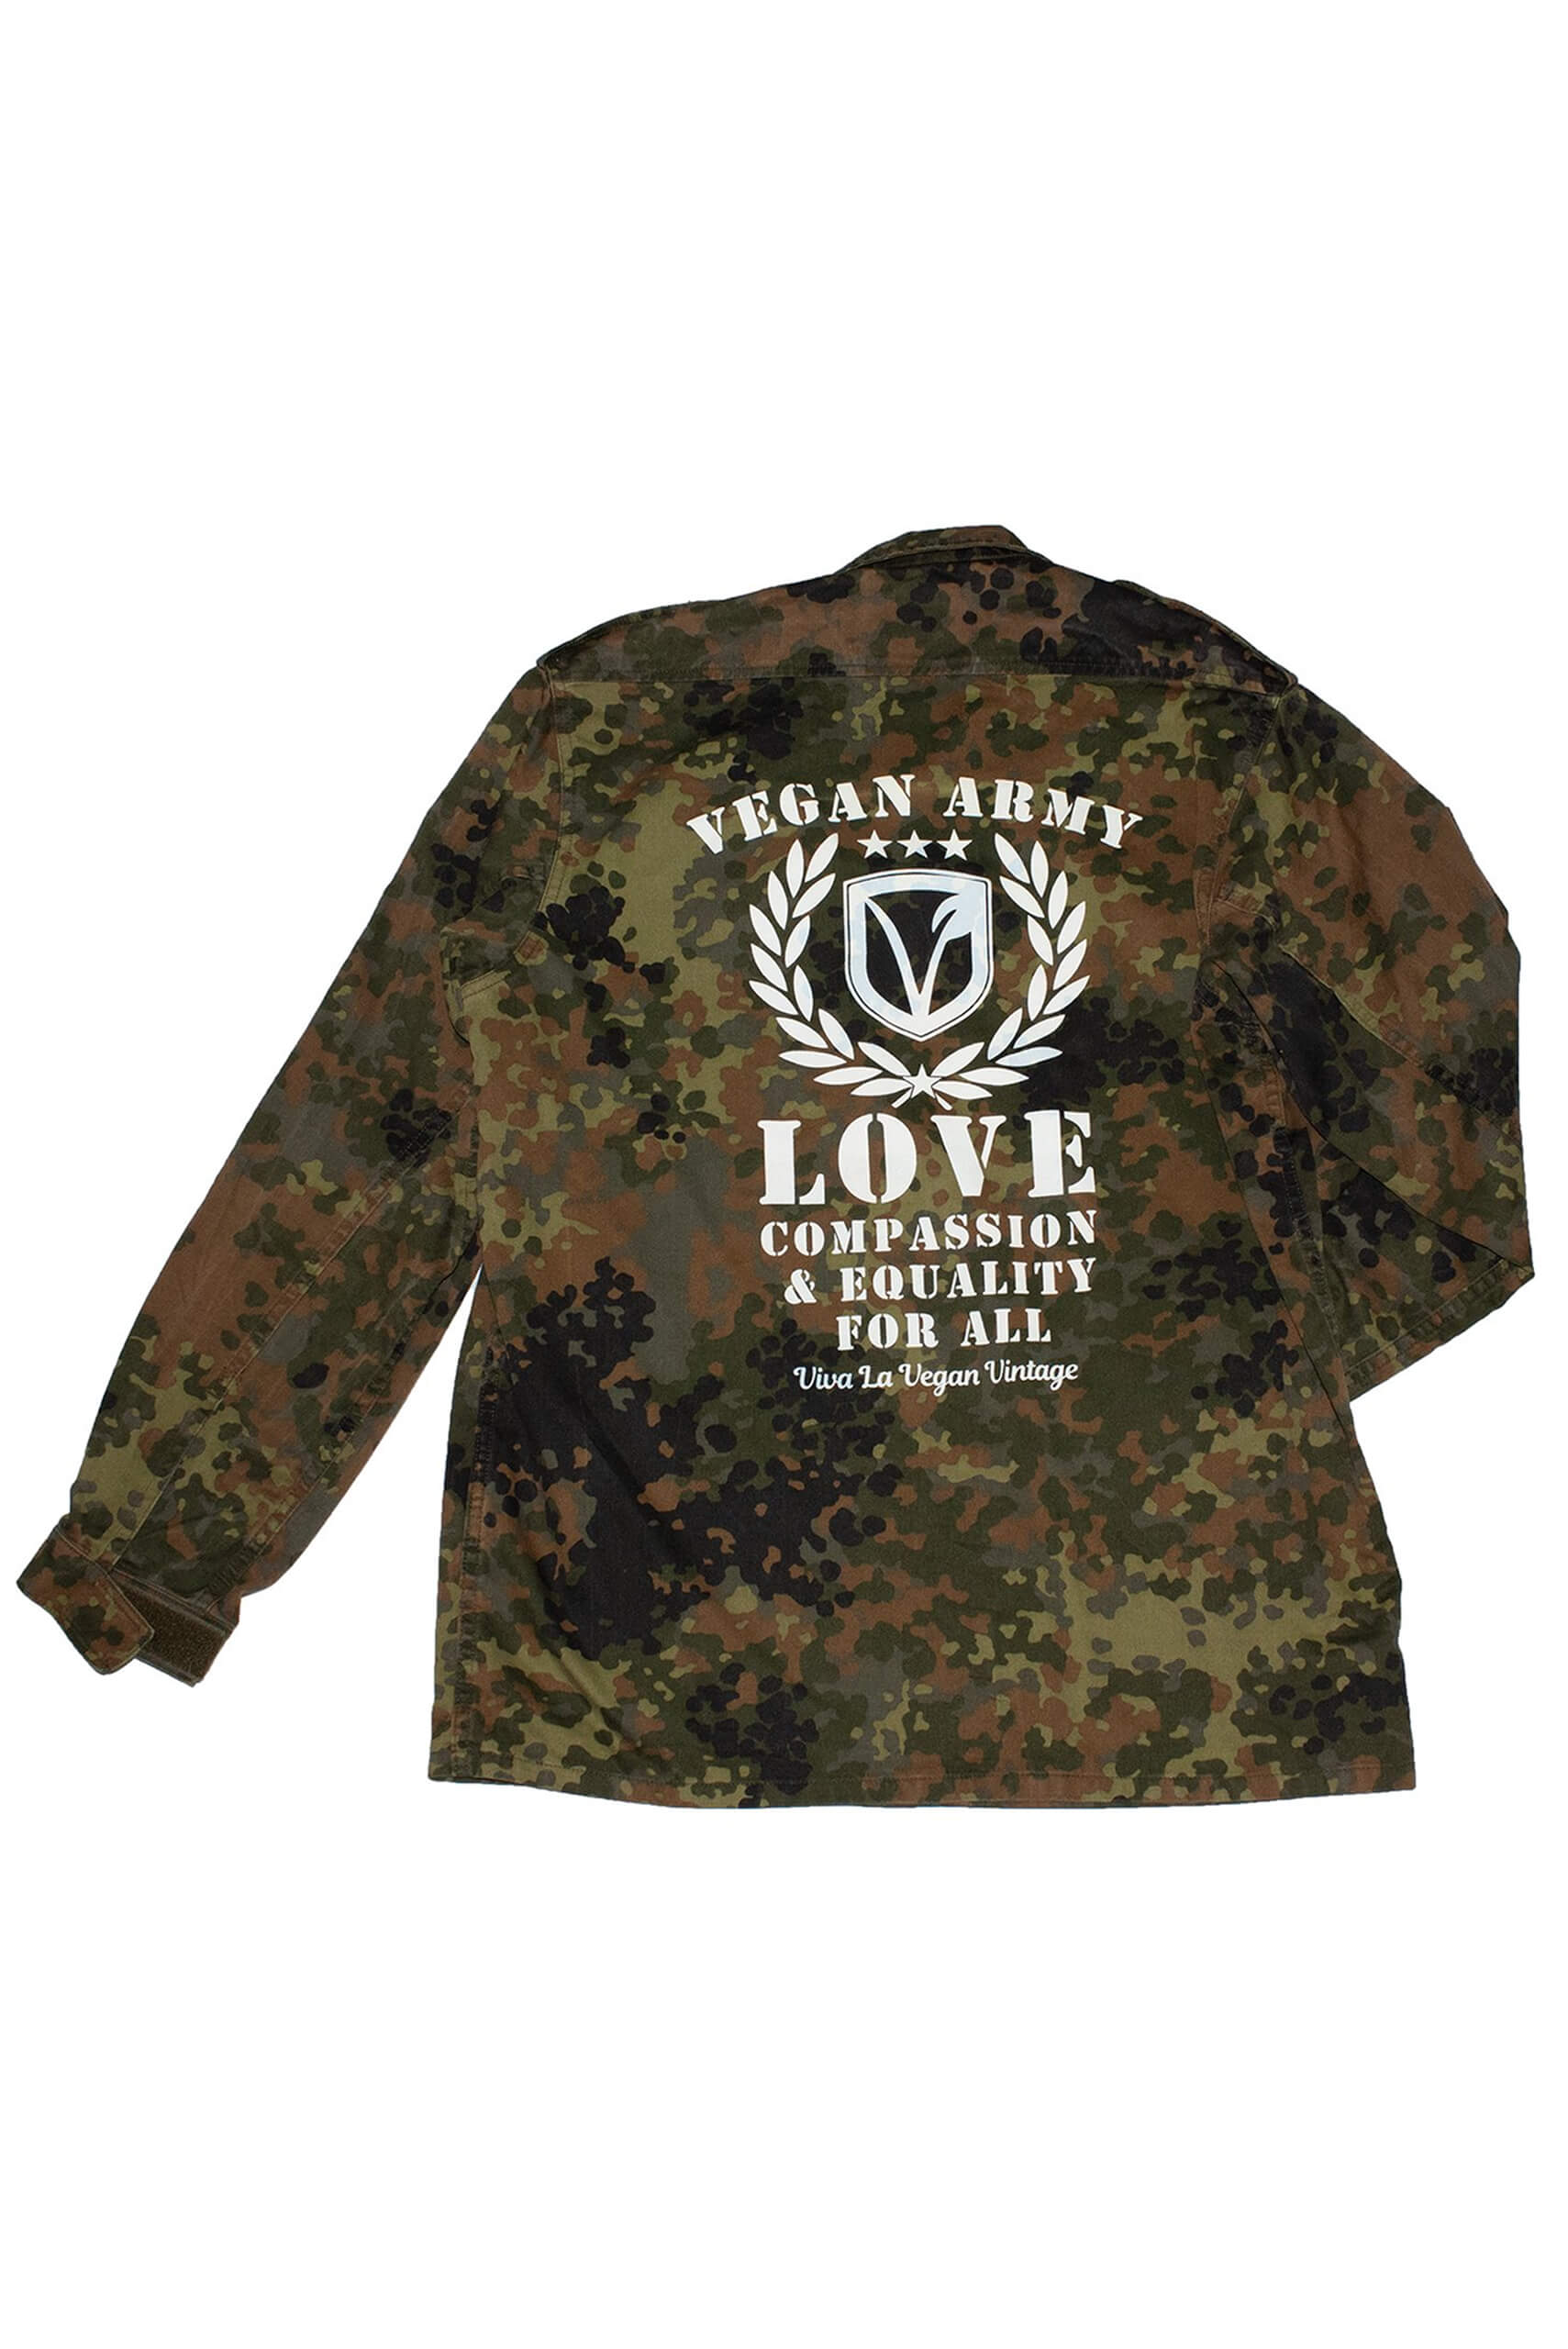 REWORKED VLVV: Army Surplus Camo : Vegan Army (unisex) White by eco-ethical brand Viva La Vegan